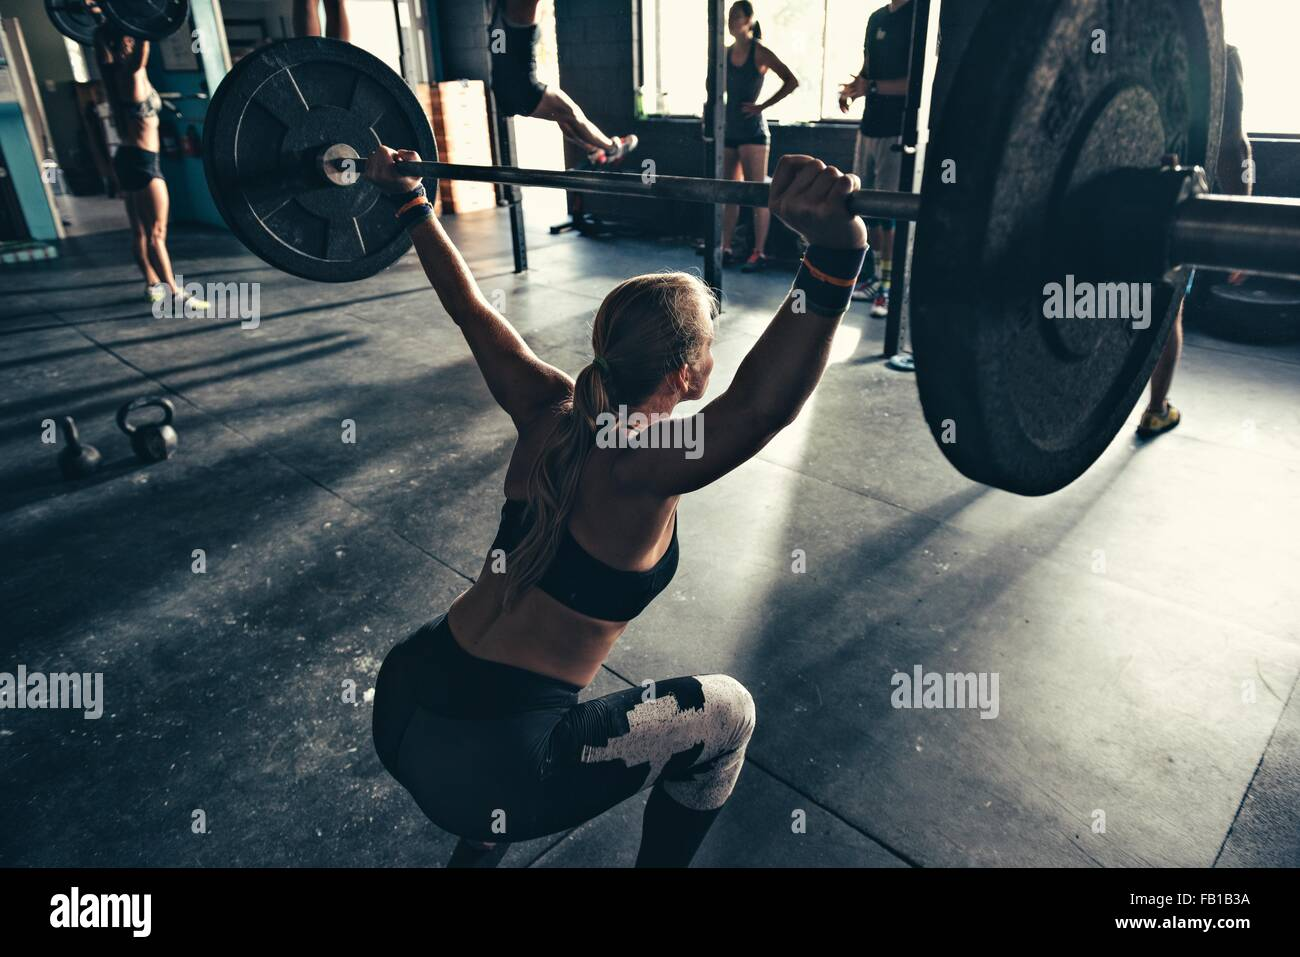 Rear view of woman crouching with barbell in gym - Stock Image